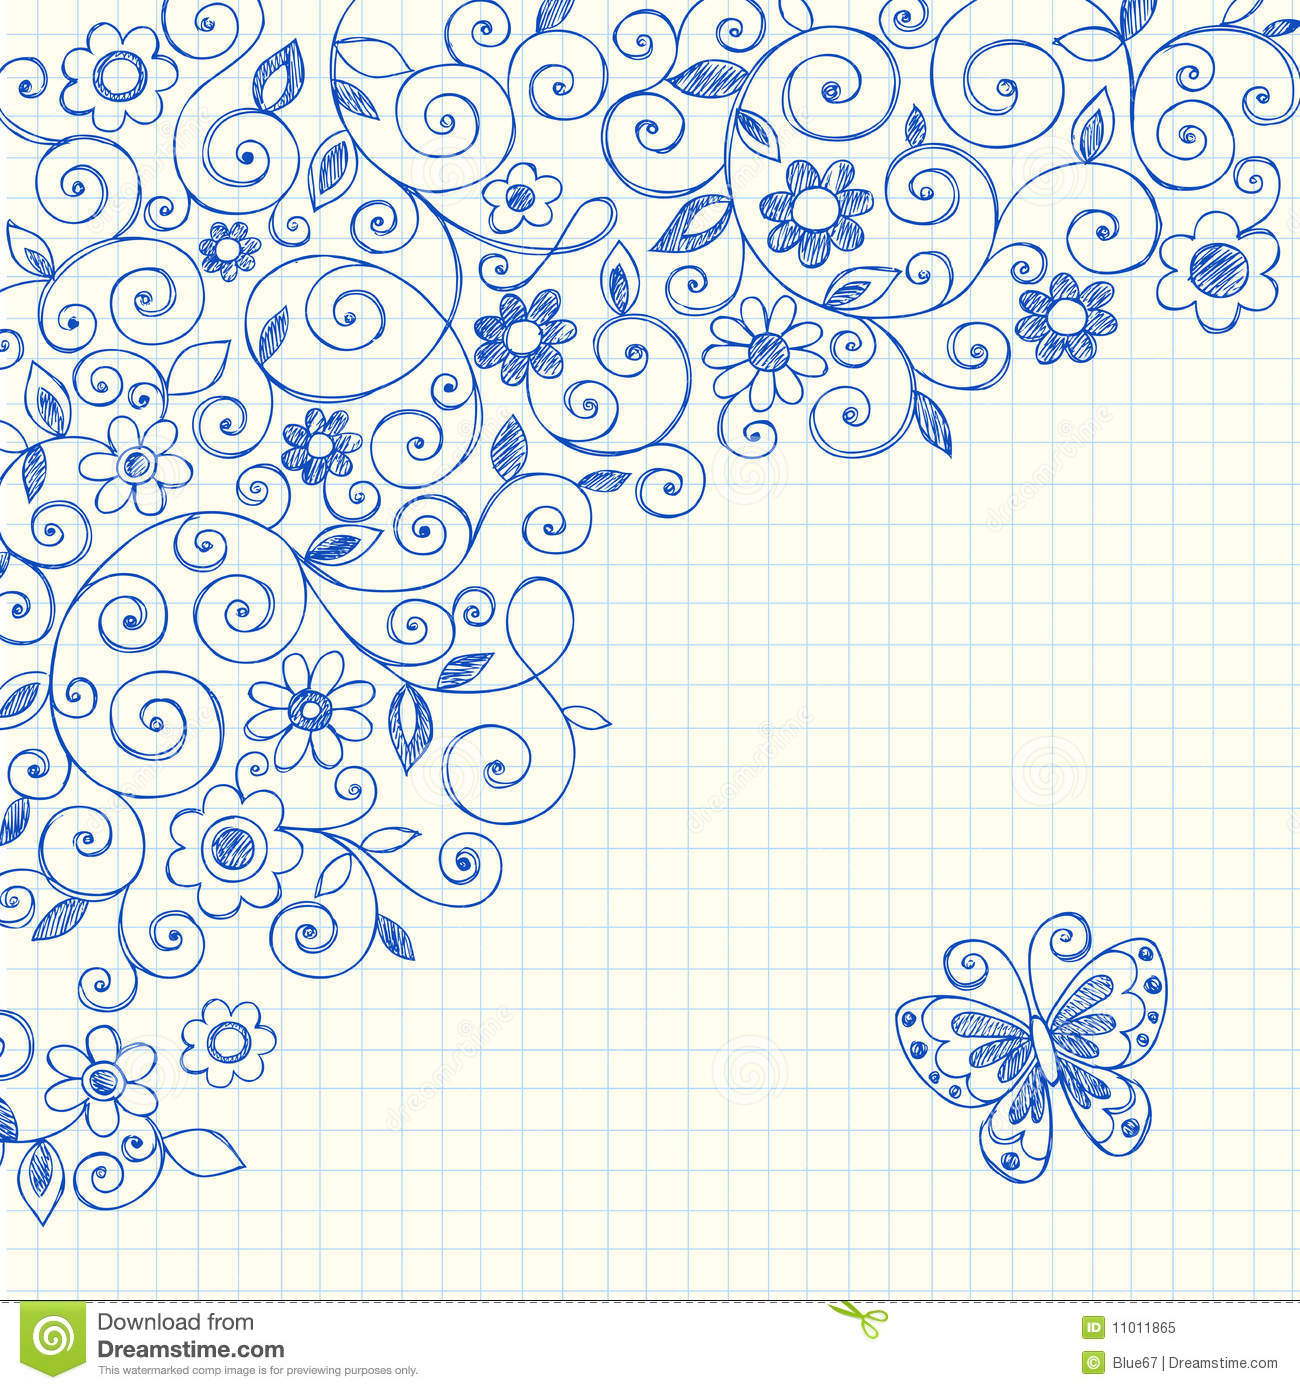 vines sketchy notebook doodles on graph paper royalty free